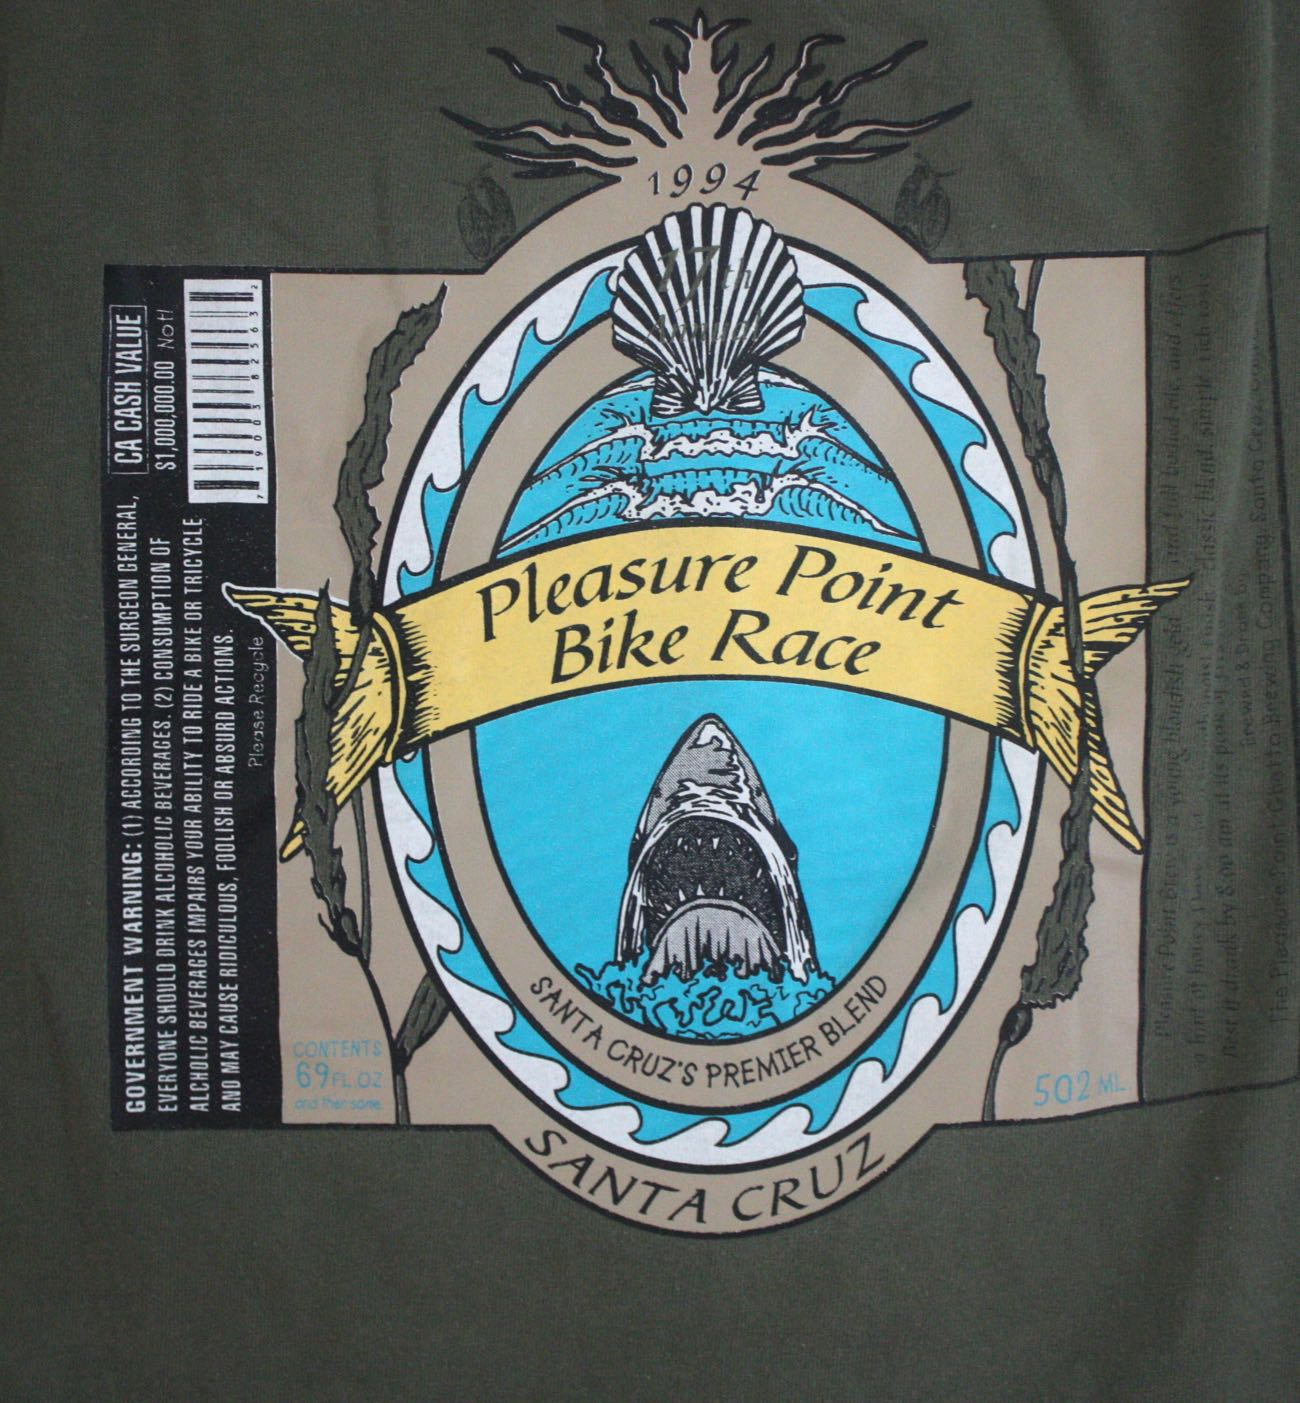 Santa Cruz Pleasure Point Bike Race 1994 Tee 3